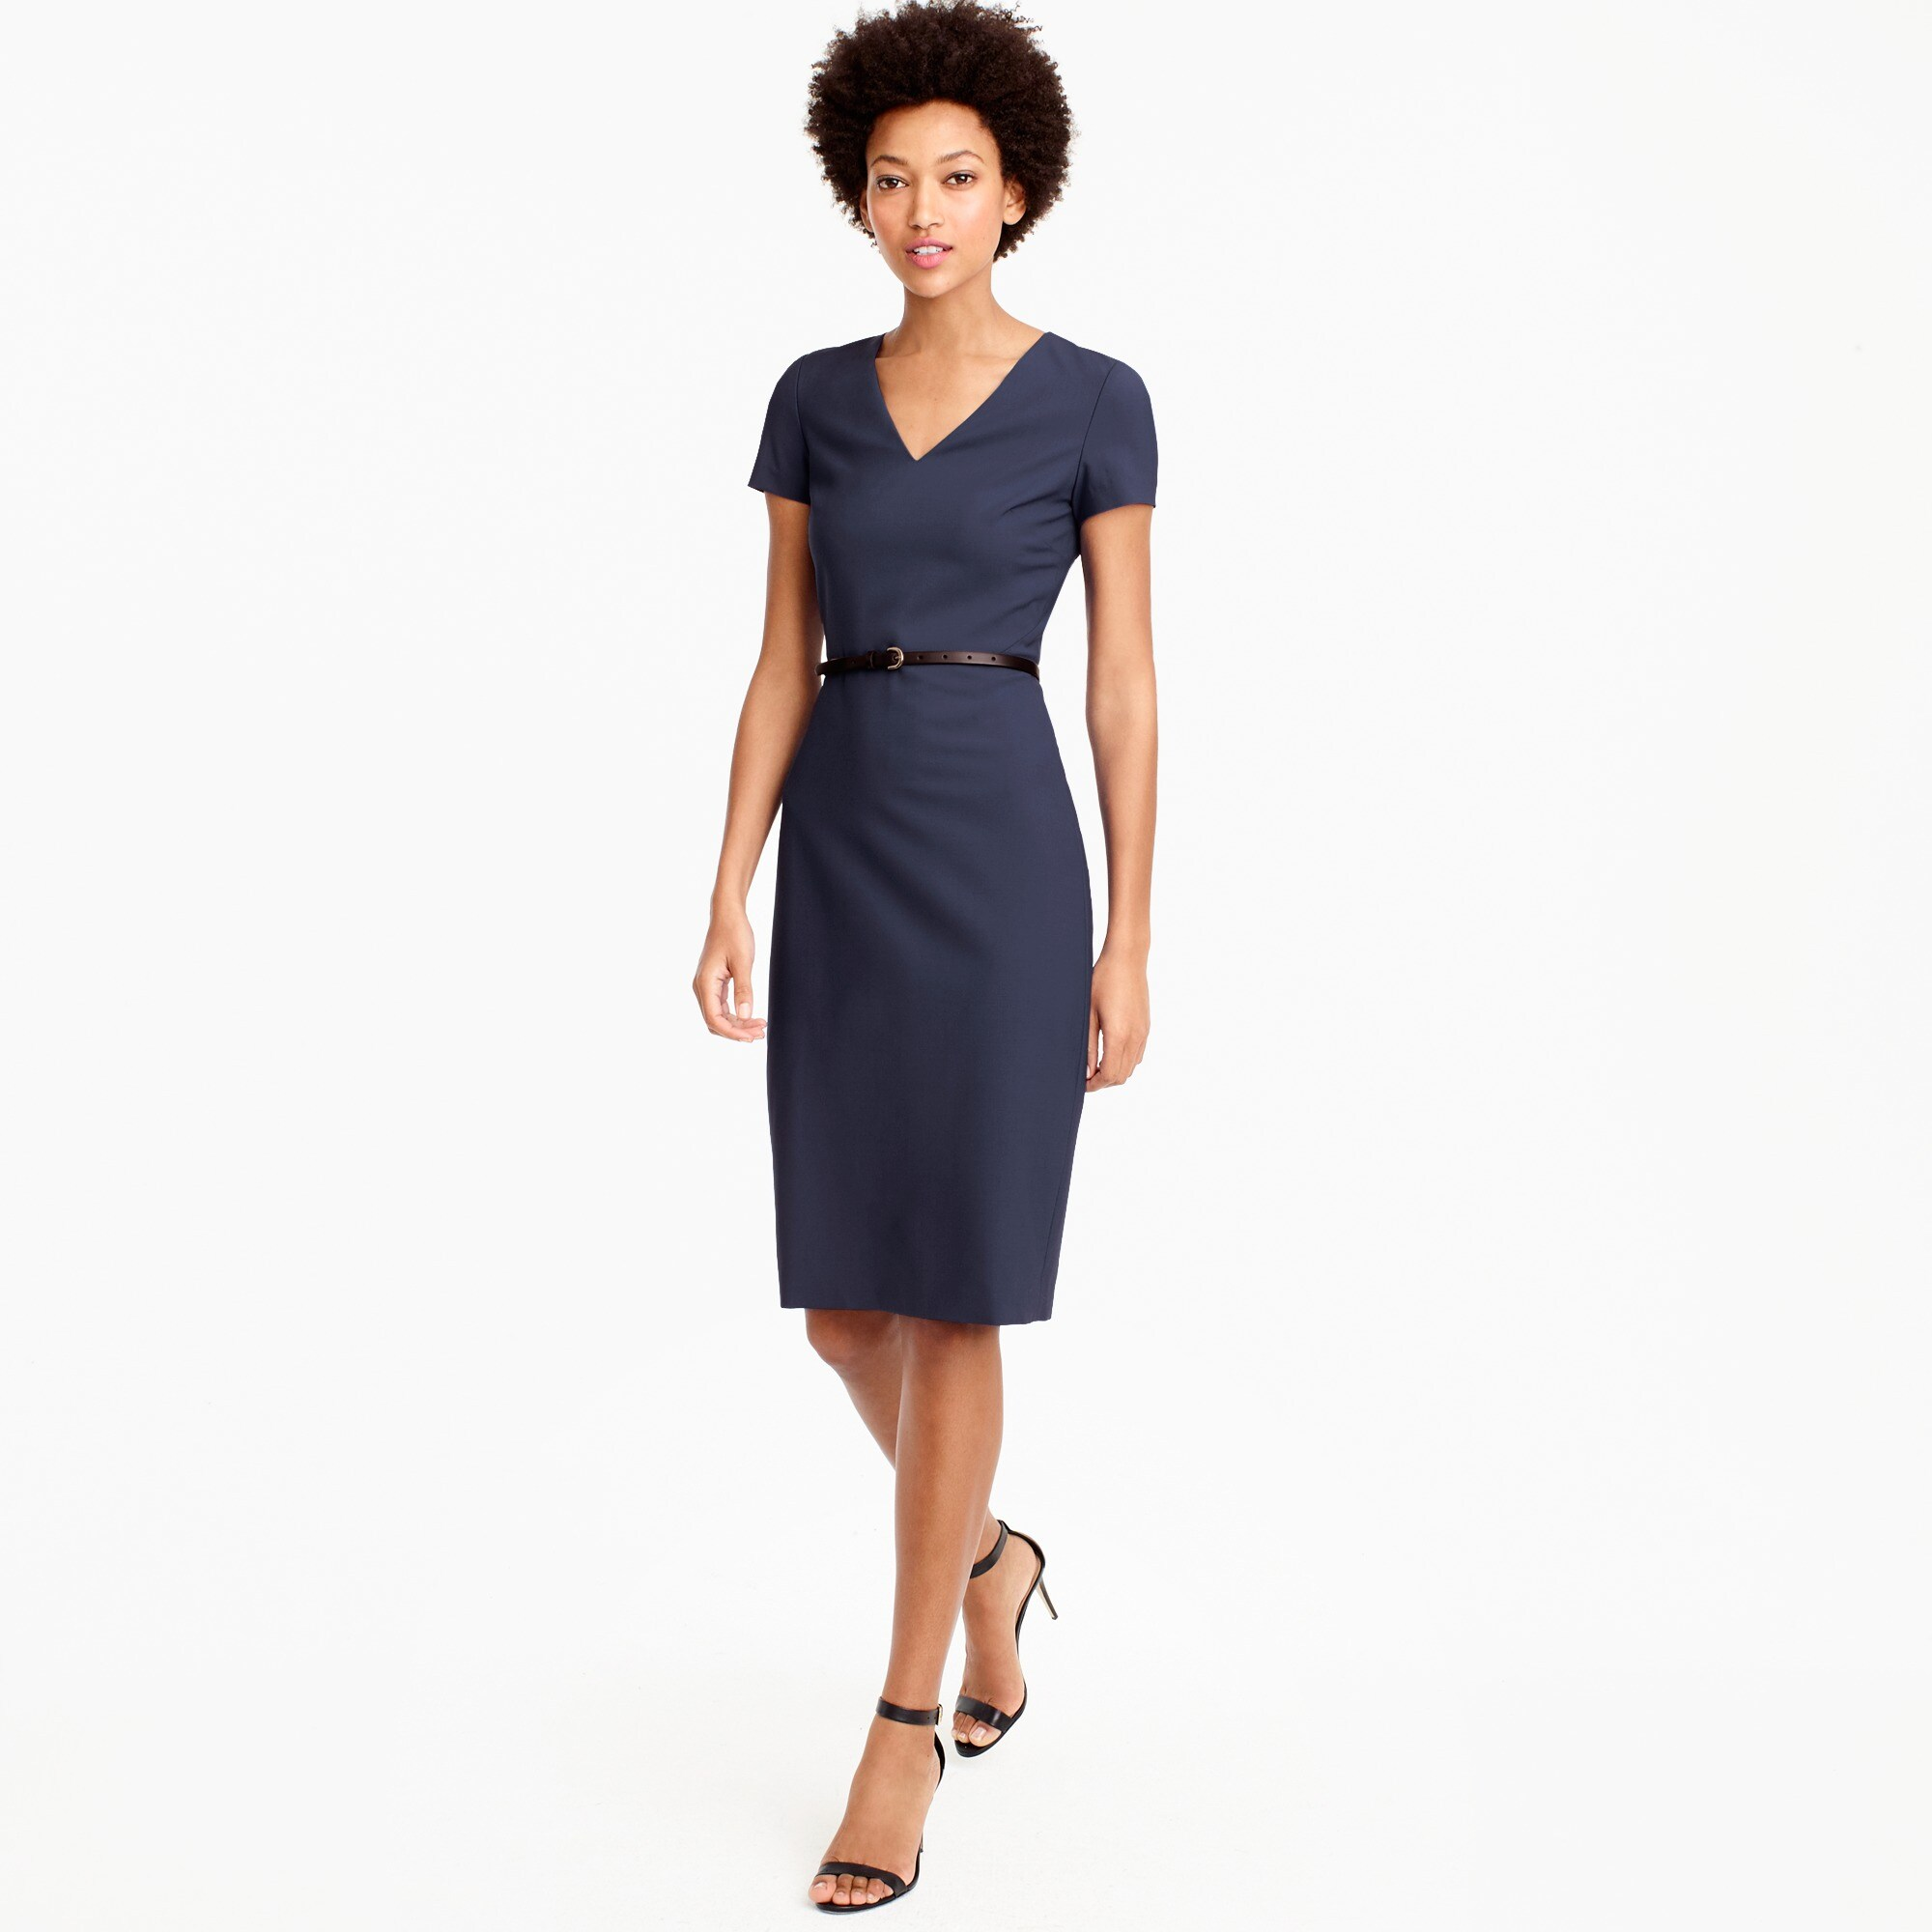 Cap-sleeve V-neck dress in Italian stretch wool